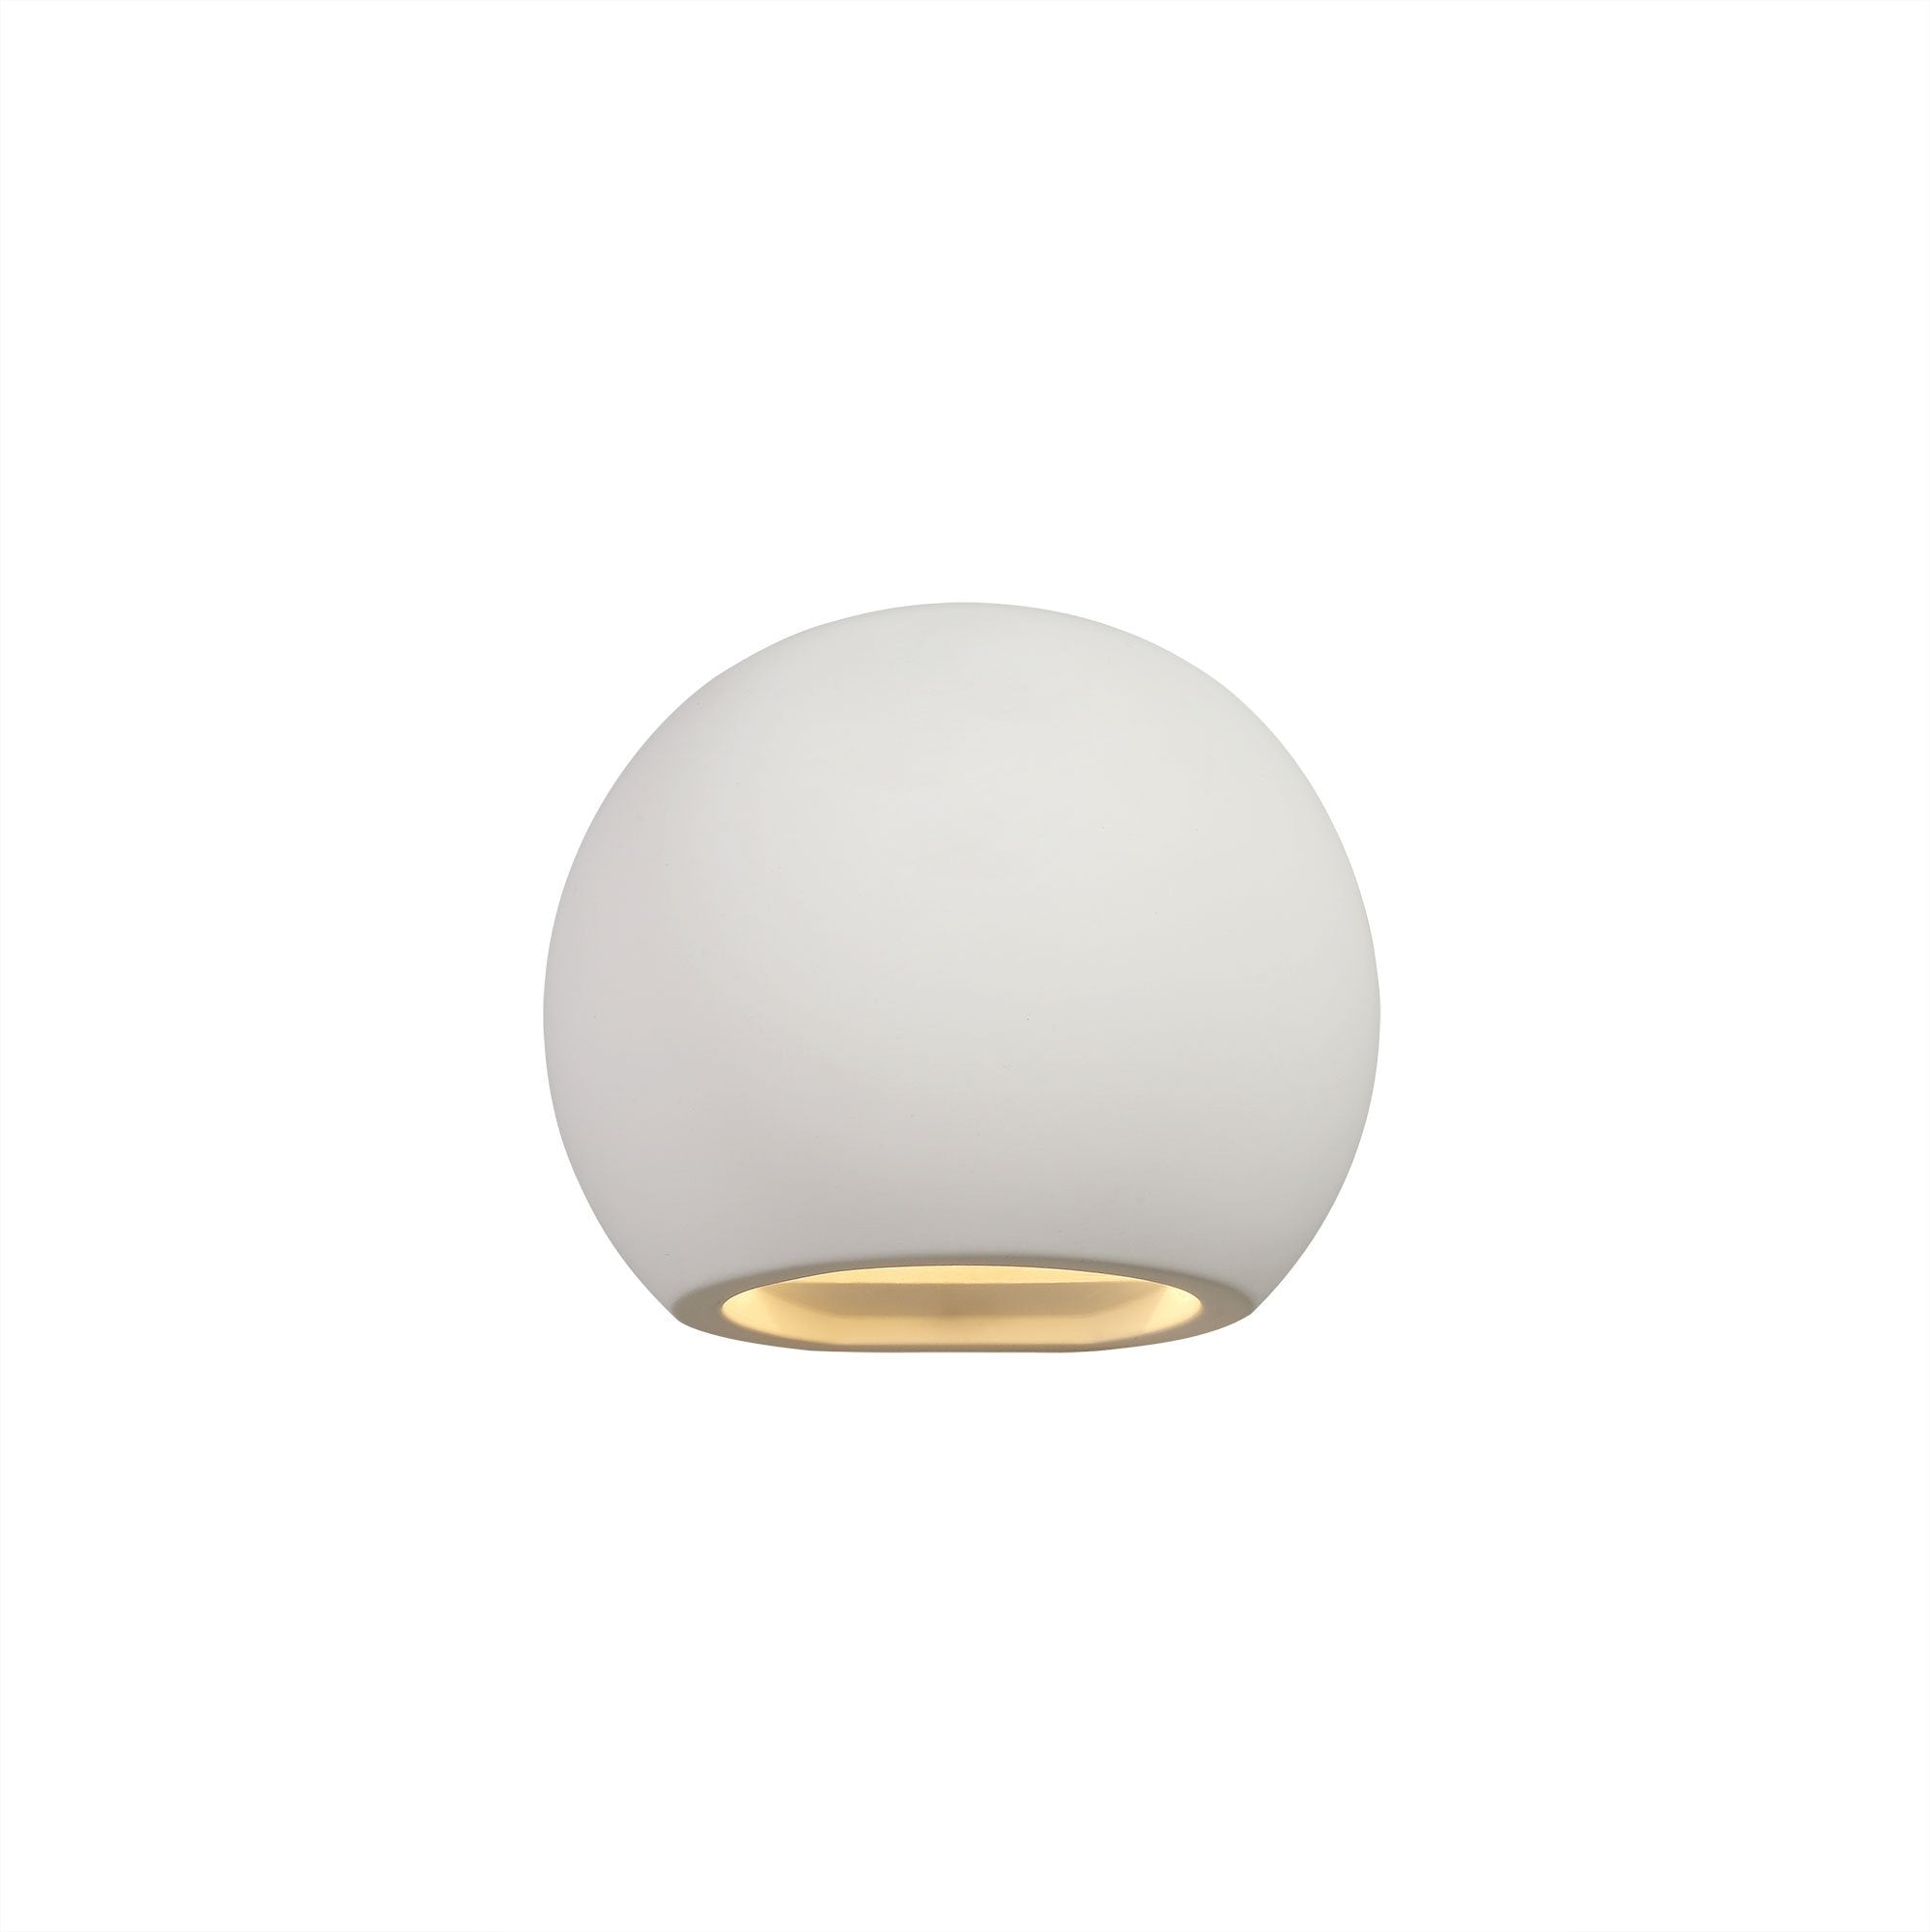 PAINT Round Ball Up & Down Wall Lamp, 1 x G9, White Paintable Gypsum (2LT205B)